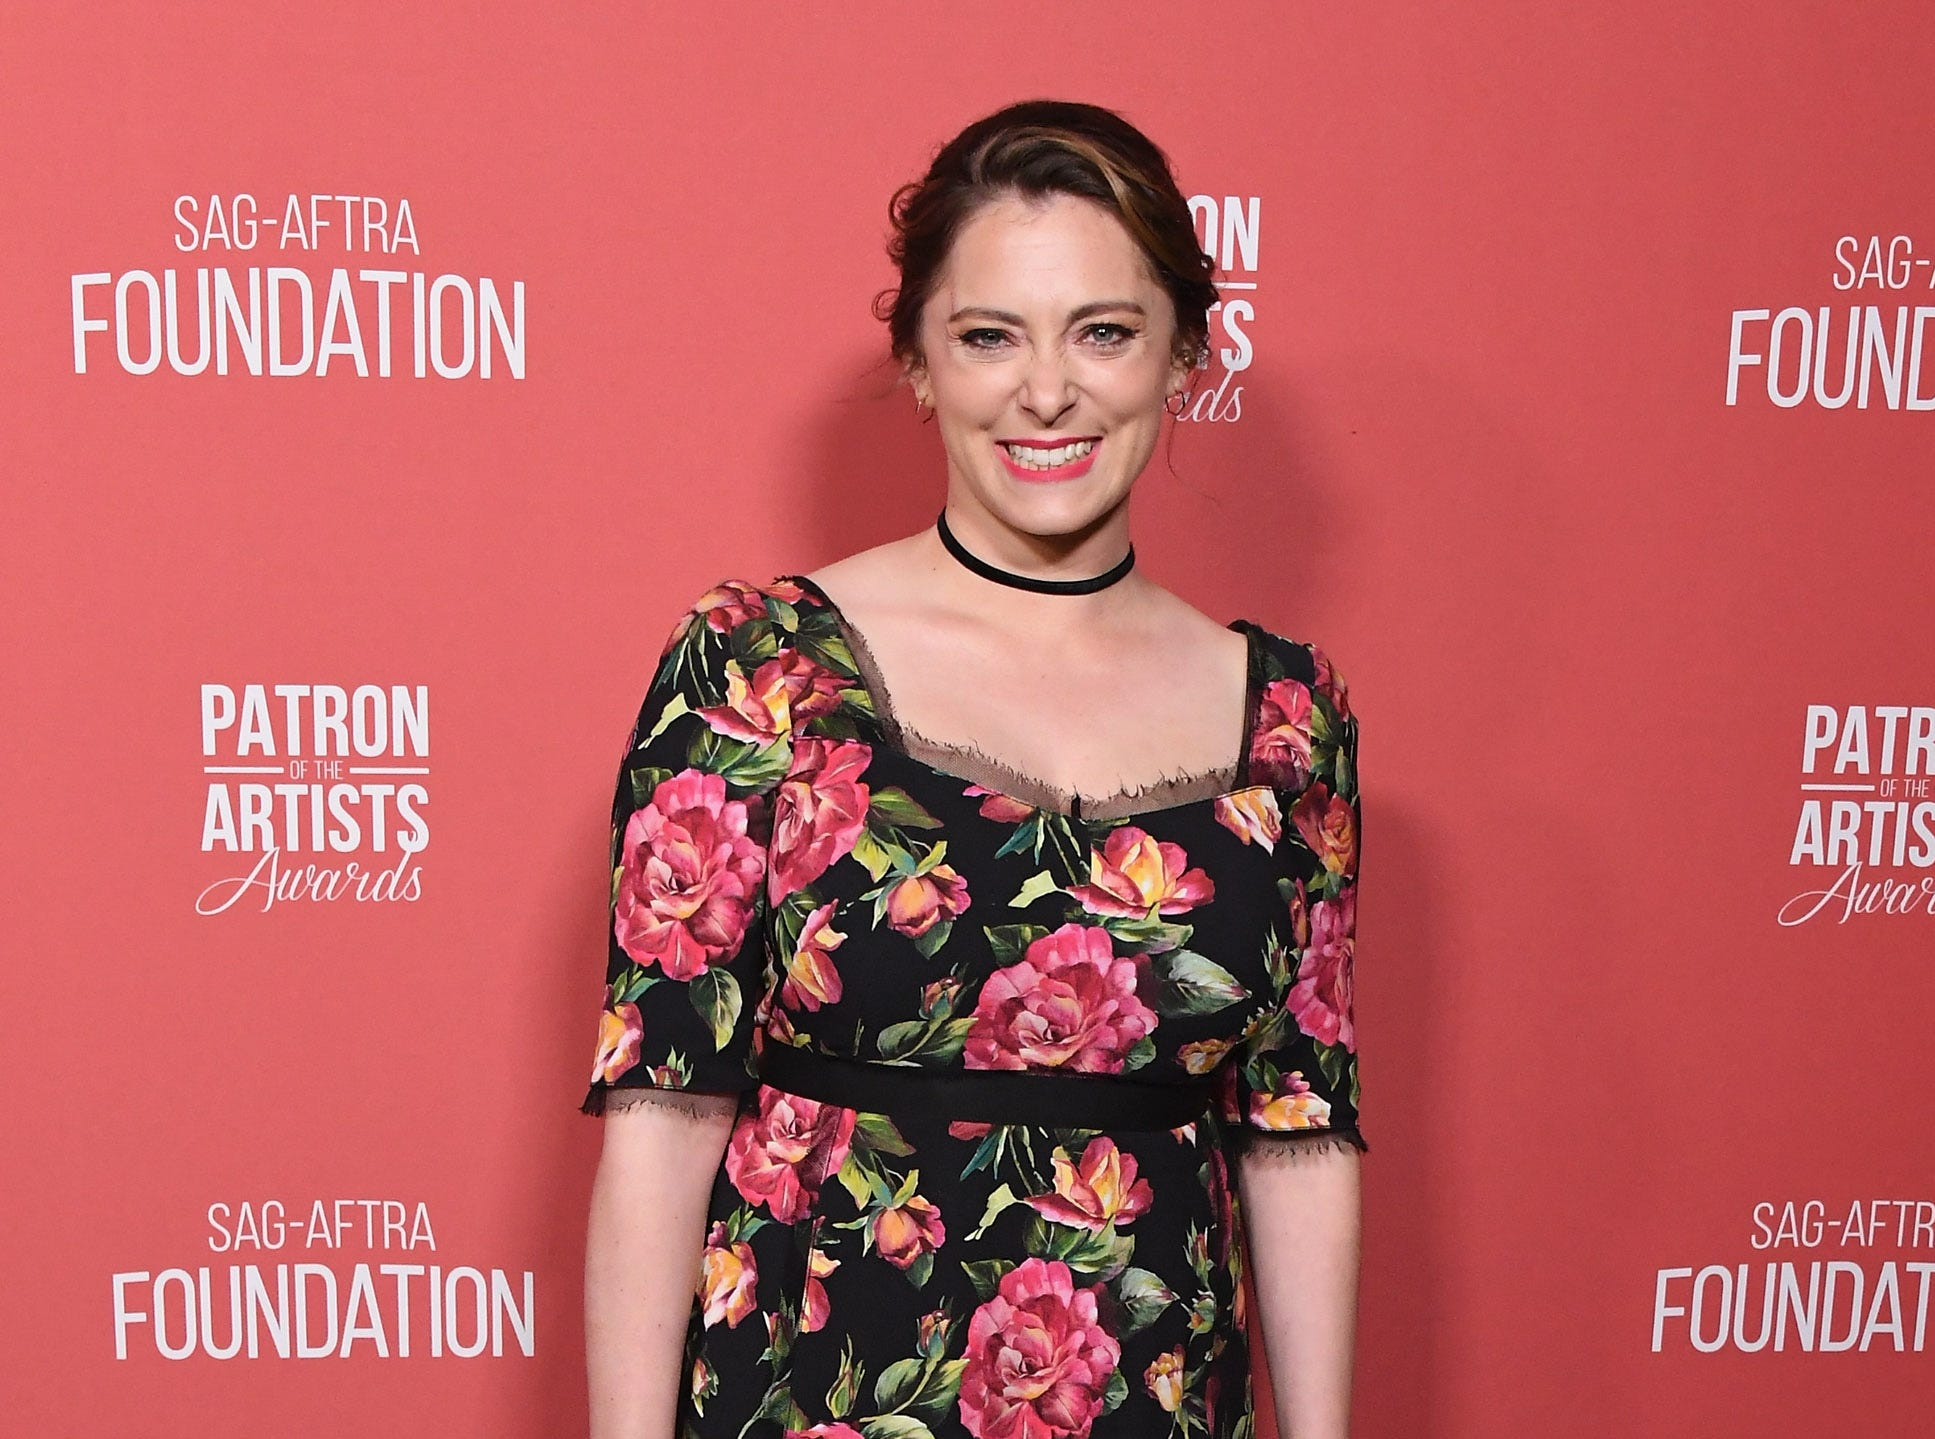 BEVERLY HILLS, CA - NOVEMBER 08:  Rachel Bloom attends SAG-AFTRA Foundation's 3rd Annual Patron Of The Artists Awards at Wallis Annenberg Center for the Performing Arts on November 8, 2018 in Beverly Hills, California.  (Photo by Jon Kopaloff/FilmMagic) ORG XMIT: 775233471 ORIG FILE ID: 1059466928